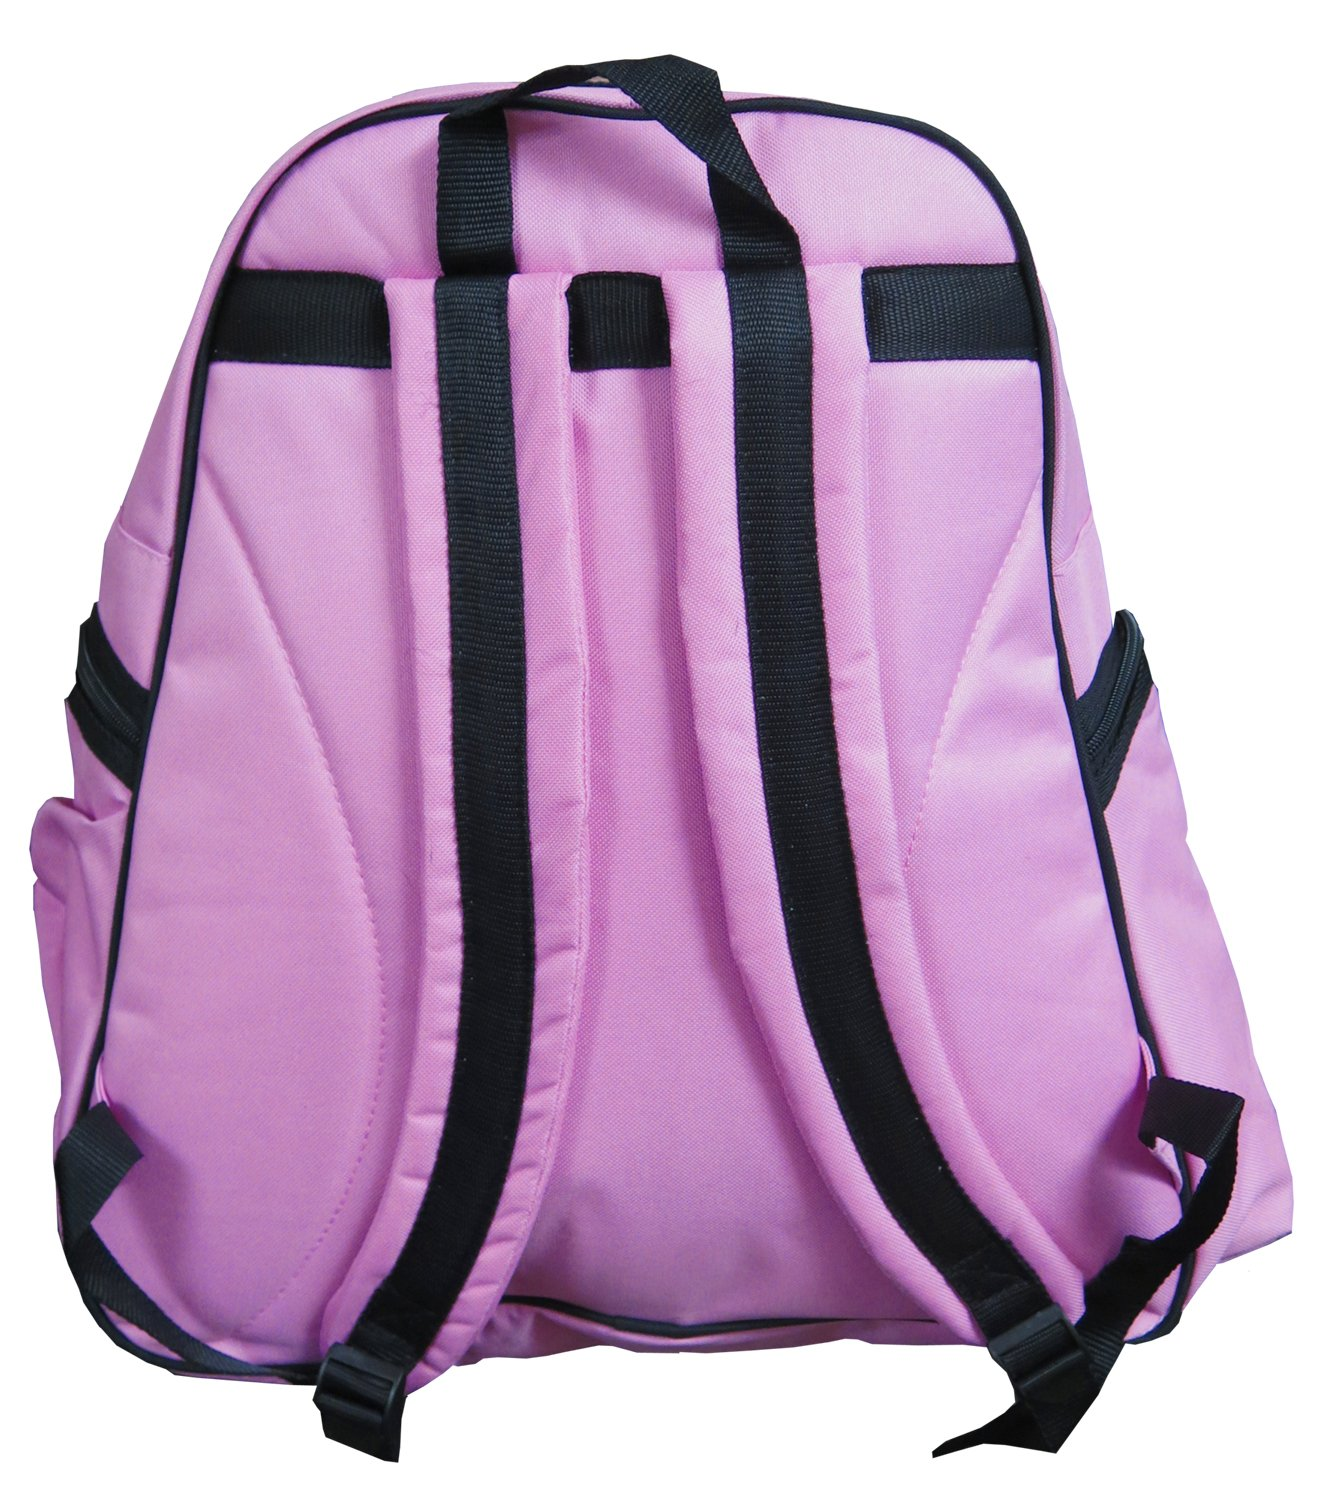 Broad Bay Girls University of Alabama Soccer Ball Backpack or Volleyball Bag Ball Carrier by Broad Bay (Image #3)